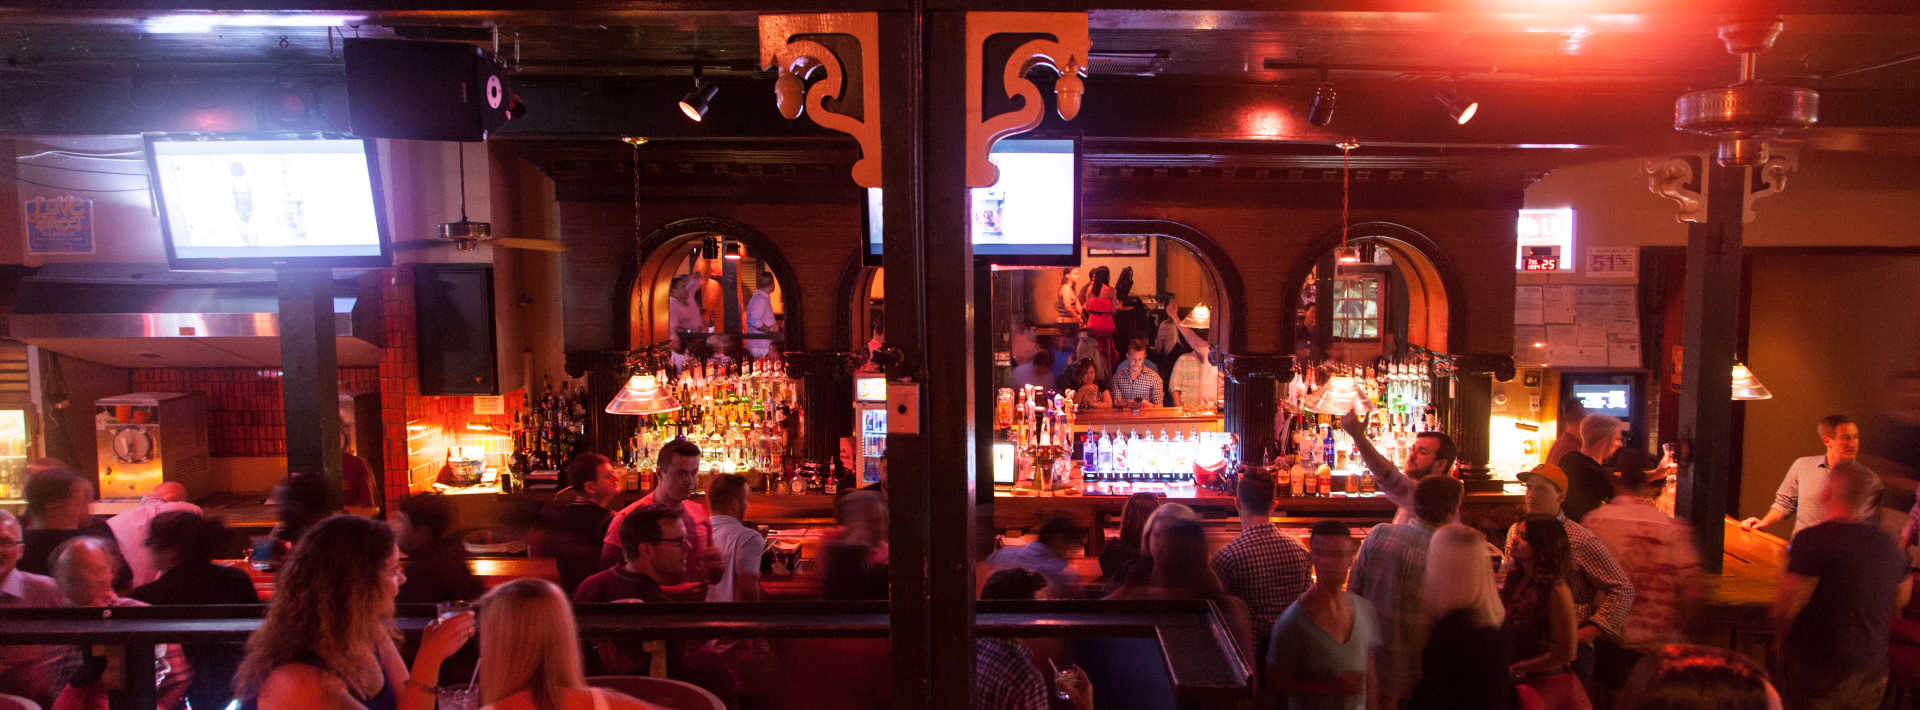 Transgender bars in houston-9698